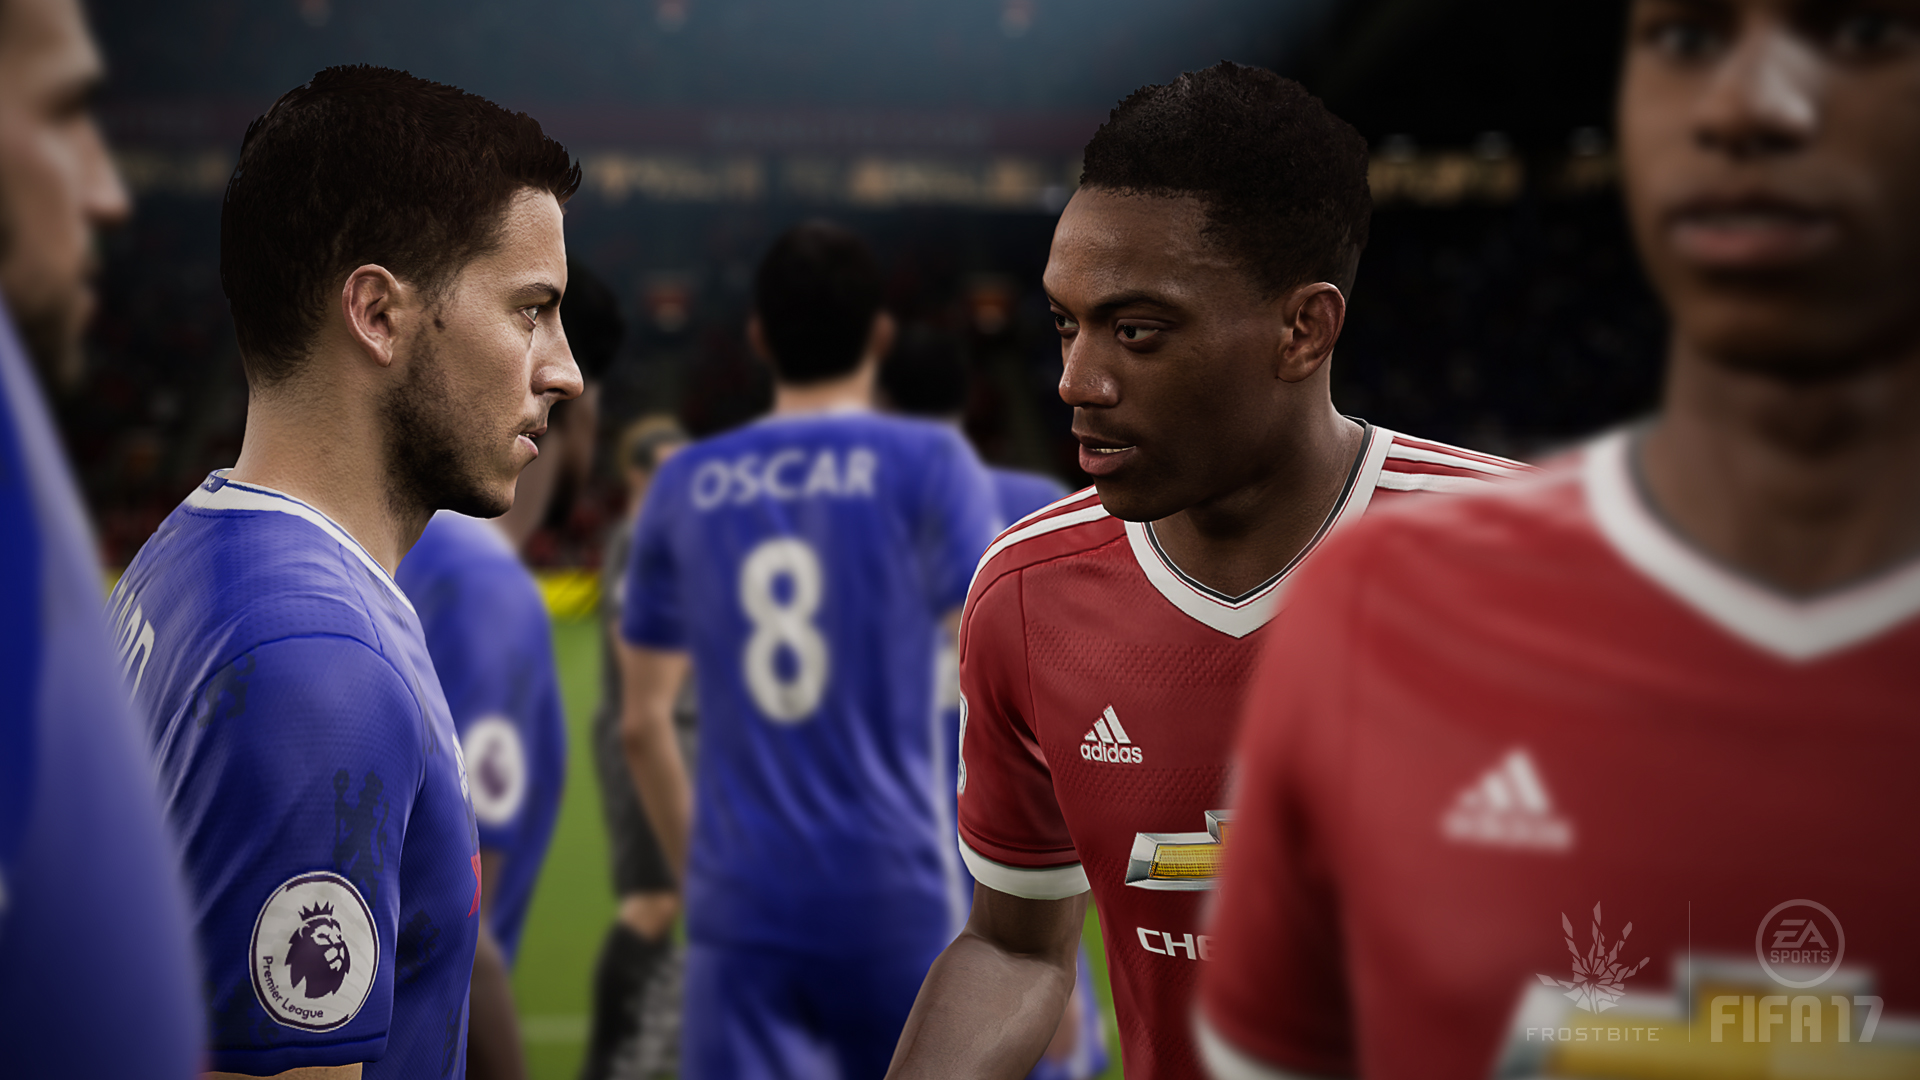 FIFA17 XB1 PS4 EAPLAY MARTIAL HAZARD LINEUP WM Heres What We Thought About FIFA 17